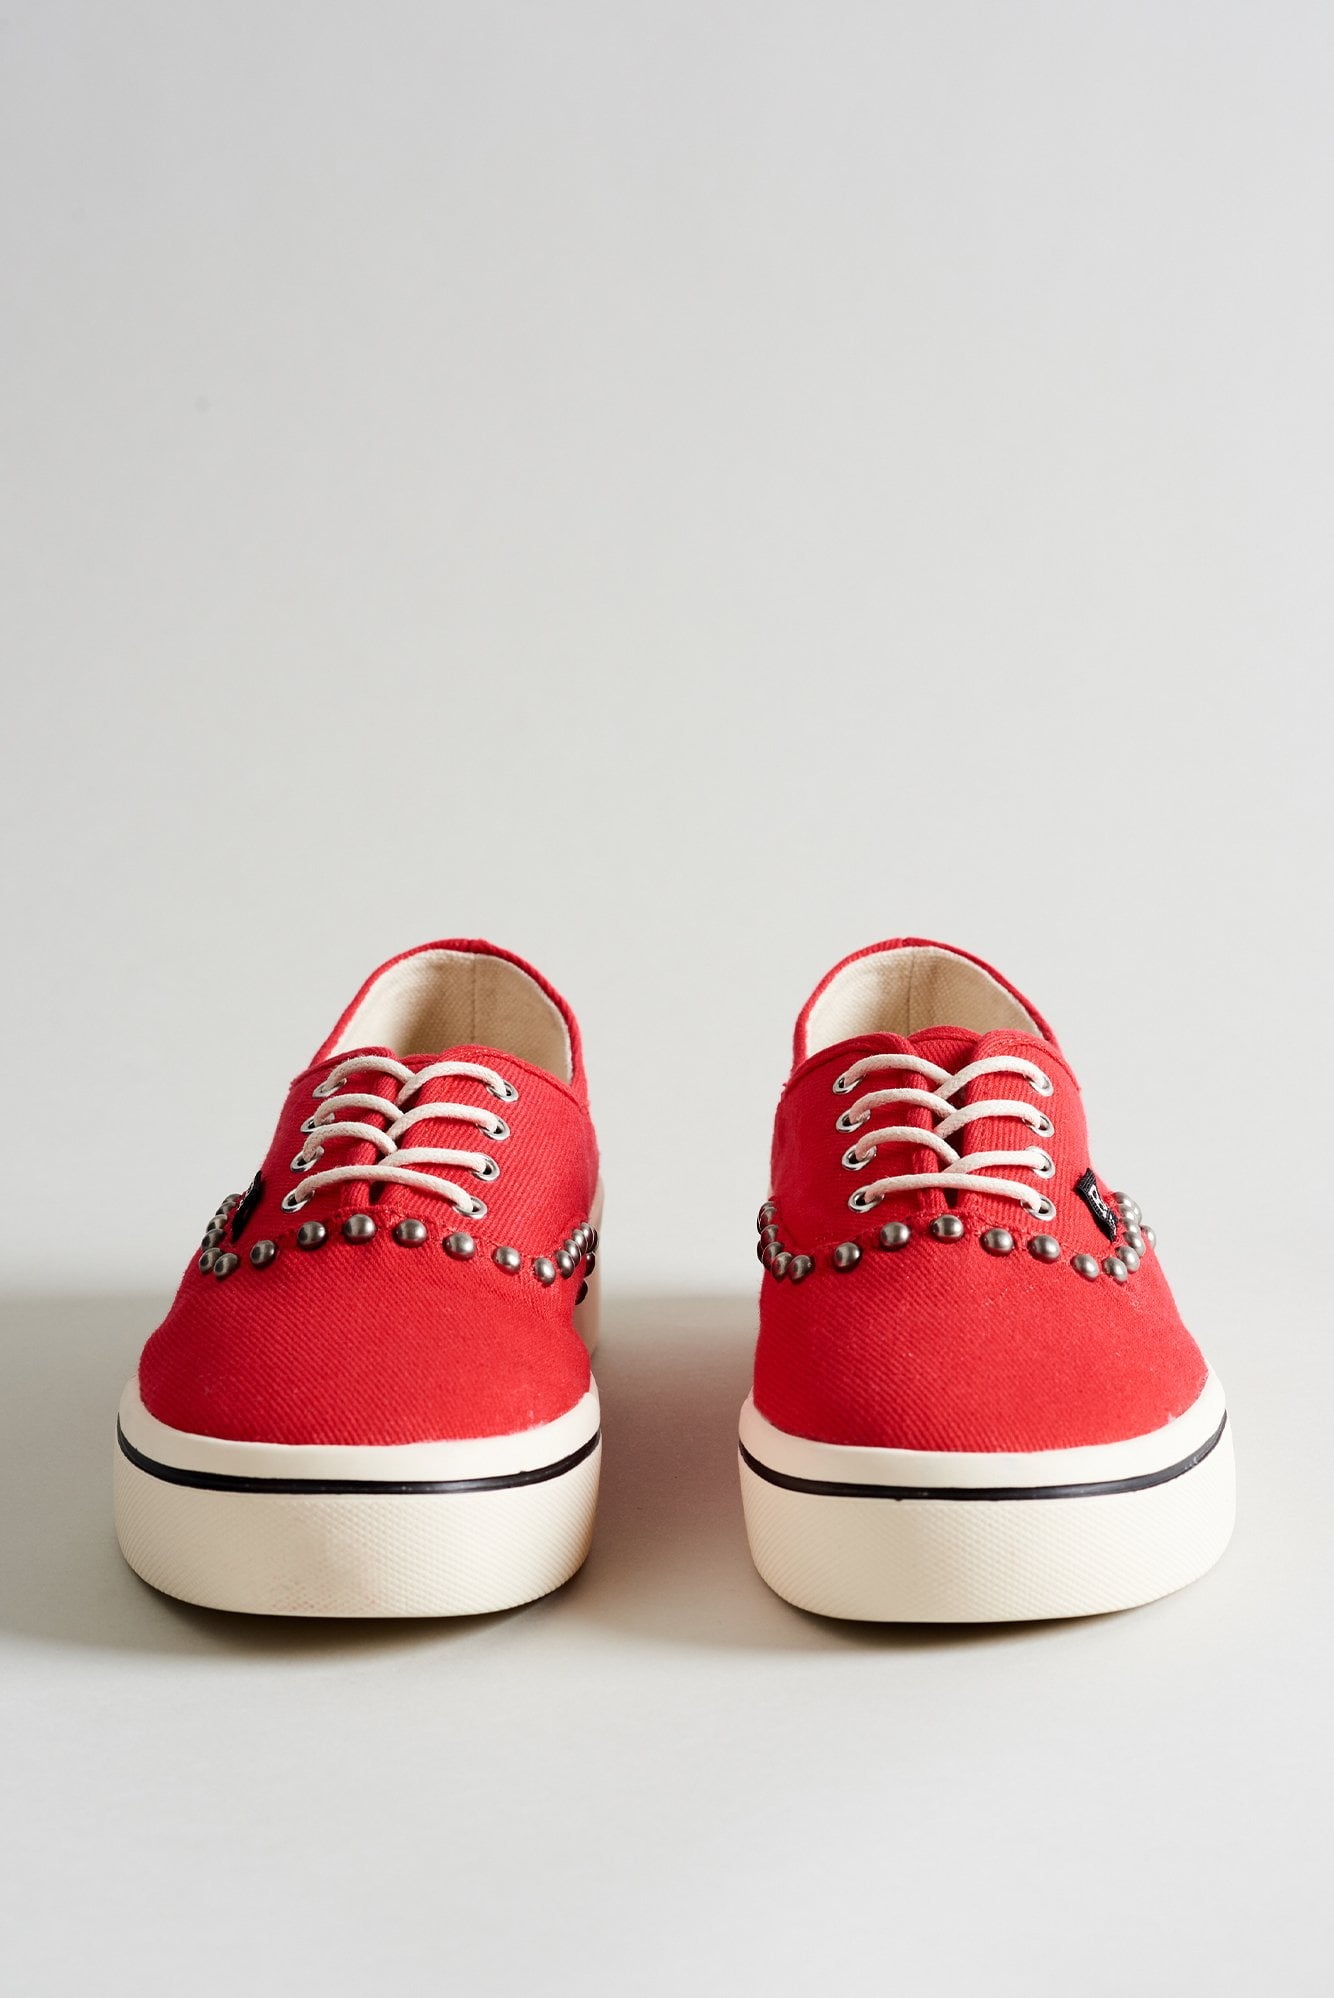 Lace Up Sneaker– Red Canvas with Studding